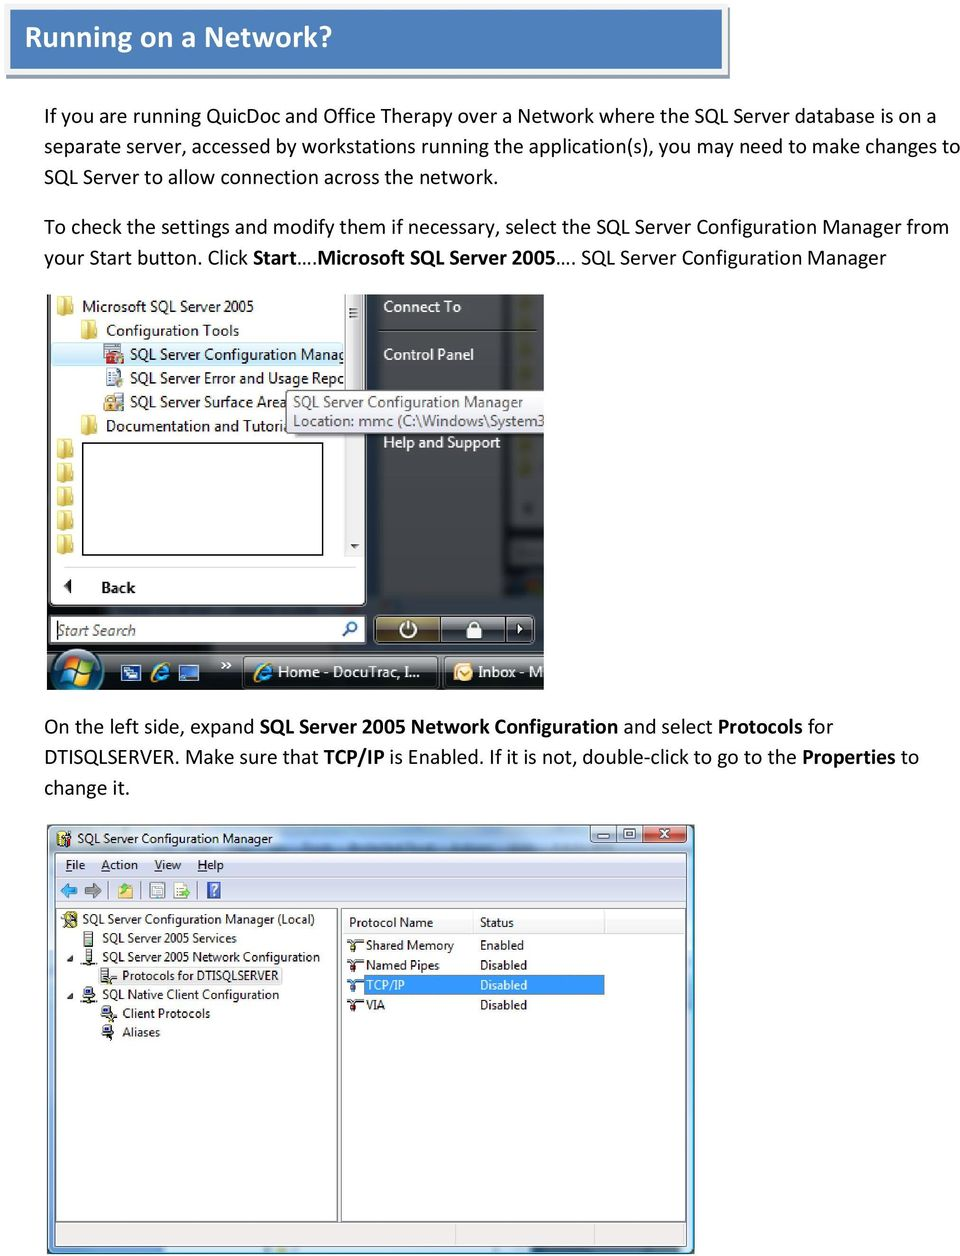 application(s), you may need to make changes to SQL Server to allow connection across the network.